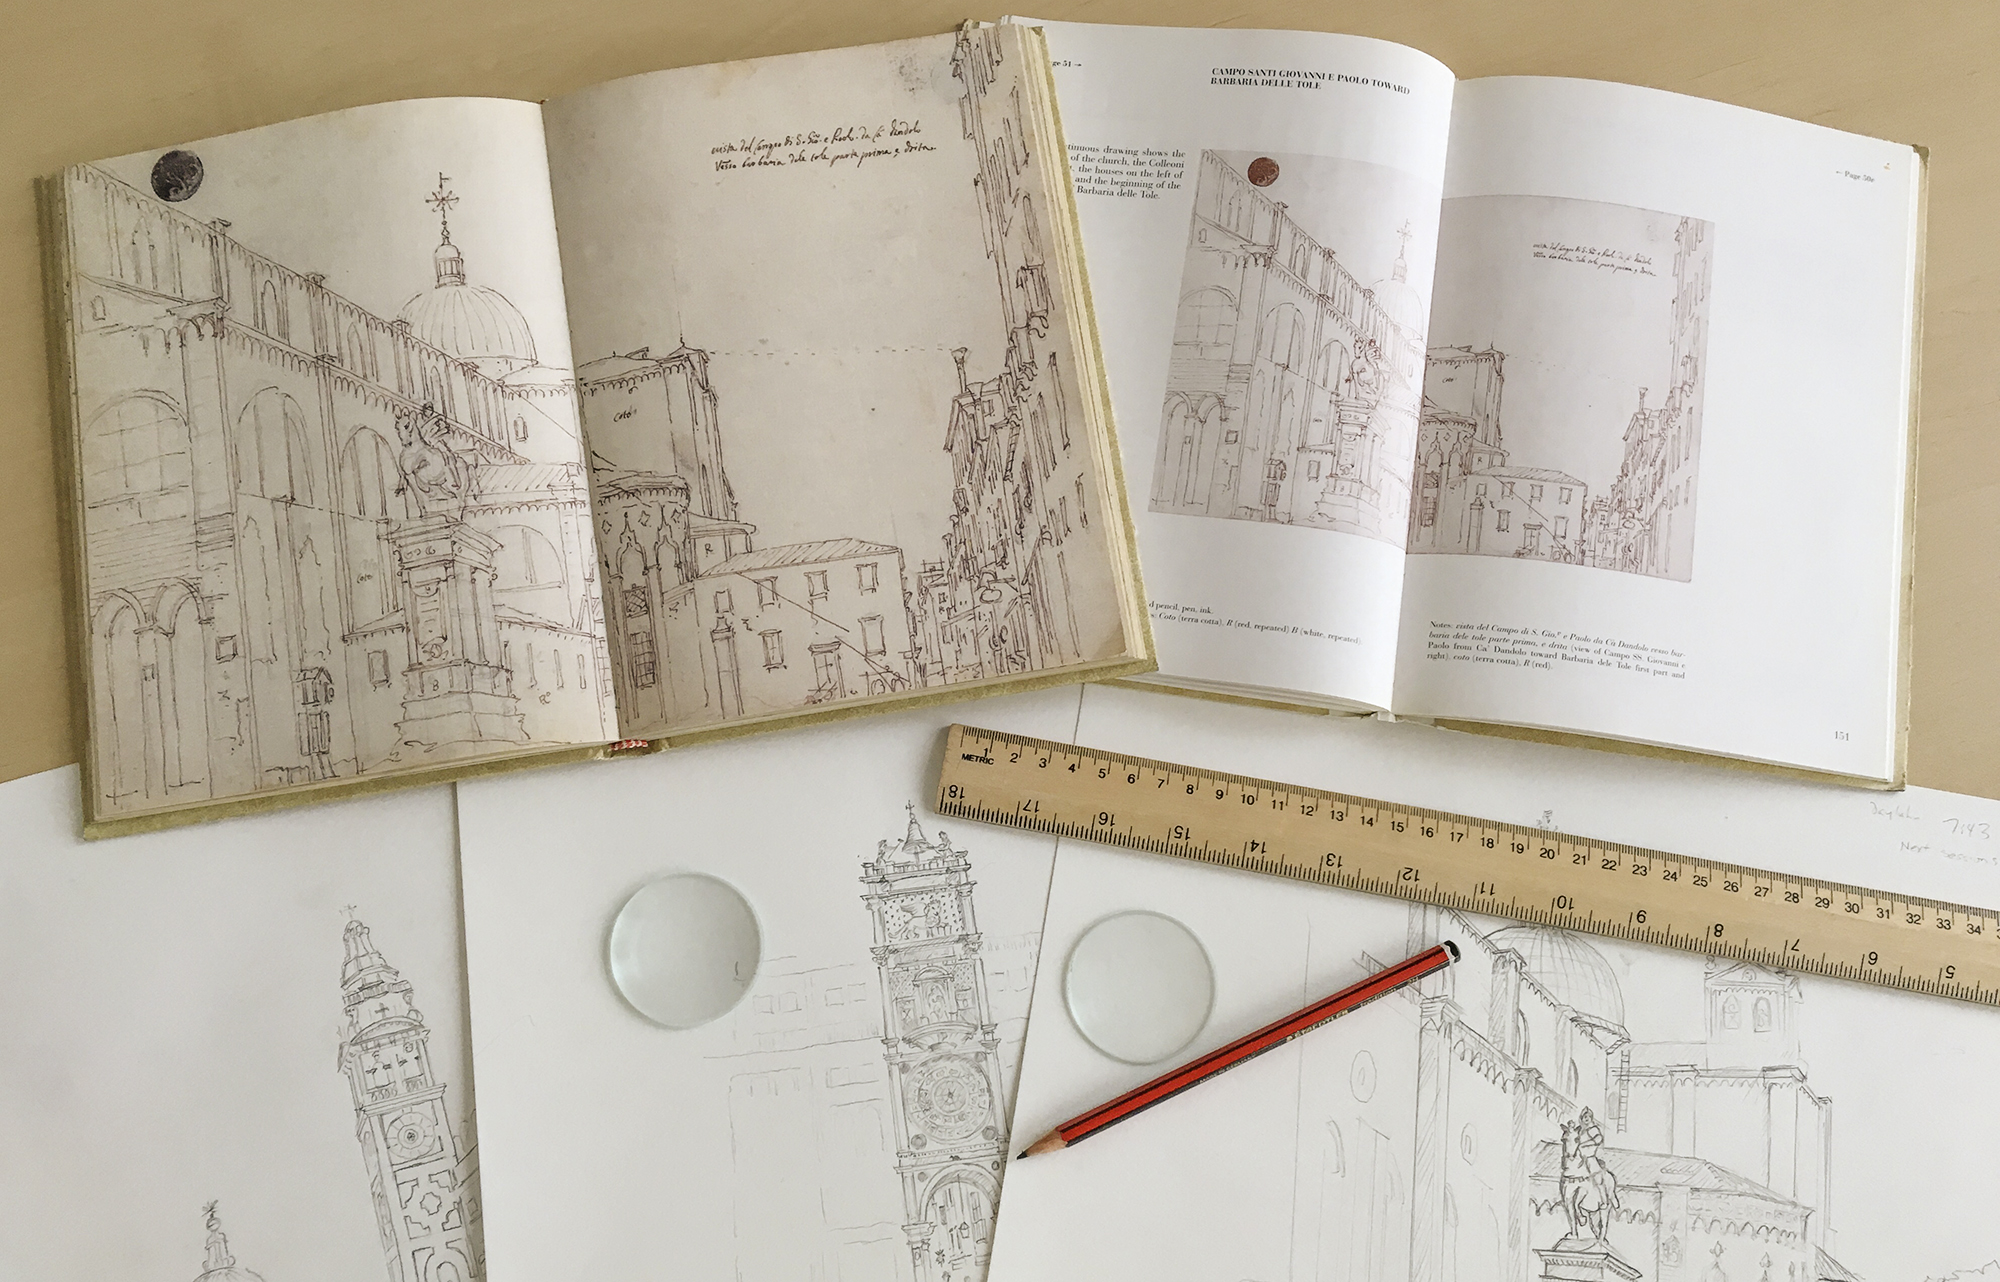 Facsimile of Canaletto's Sketchbook with annotated companion guide, new sketches made in 2015, and the lenses used to assist them.